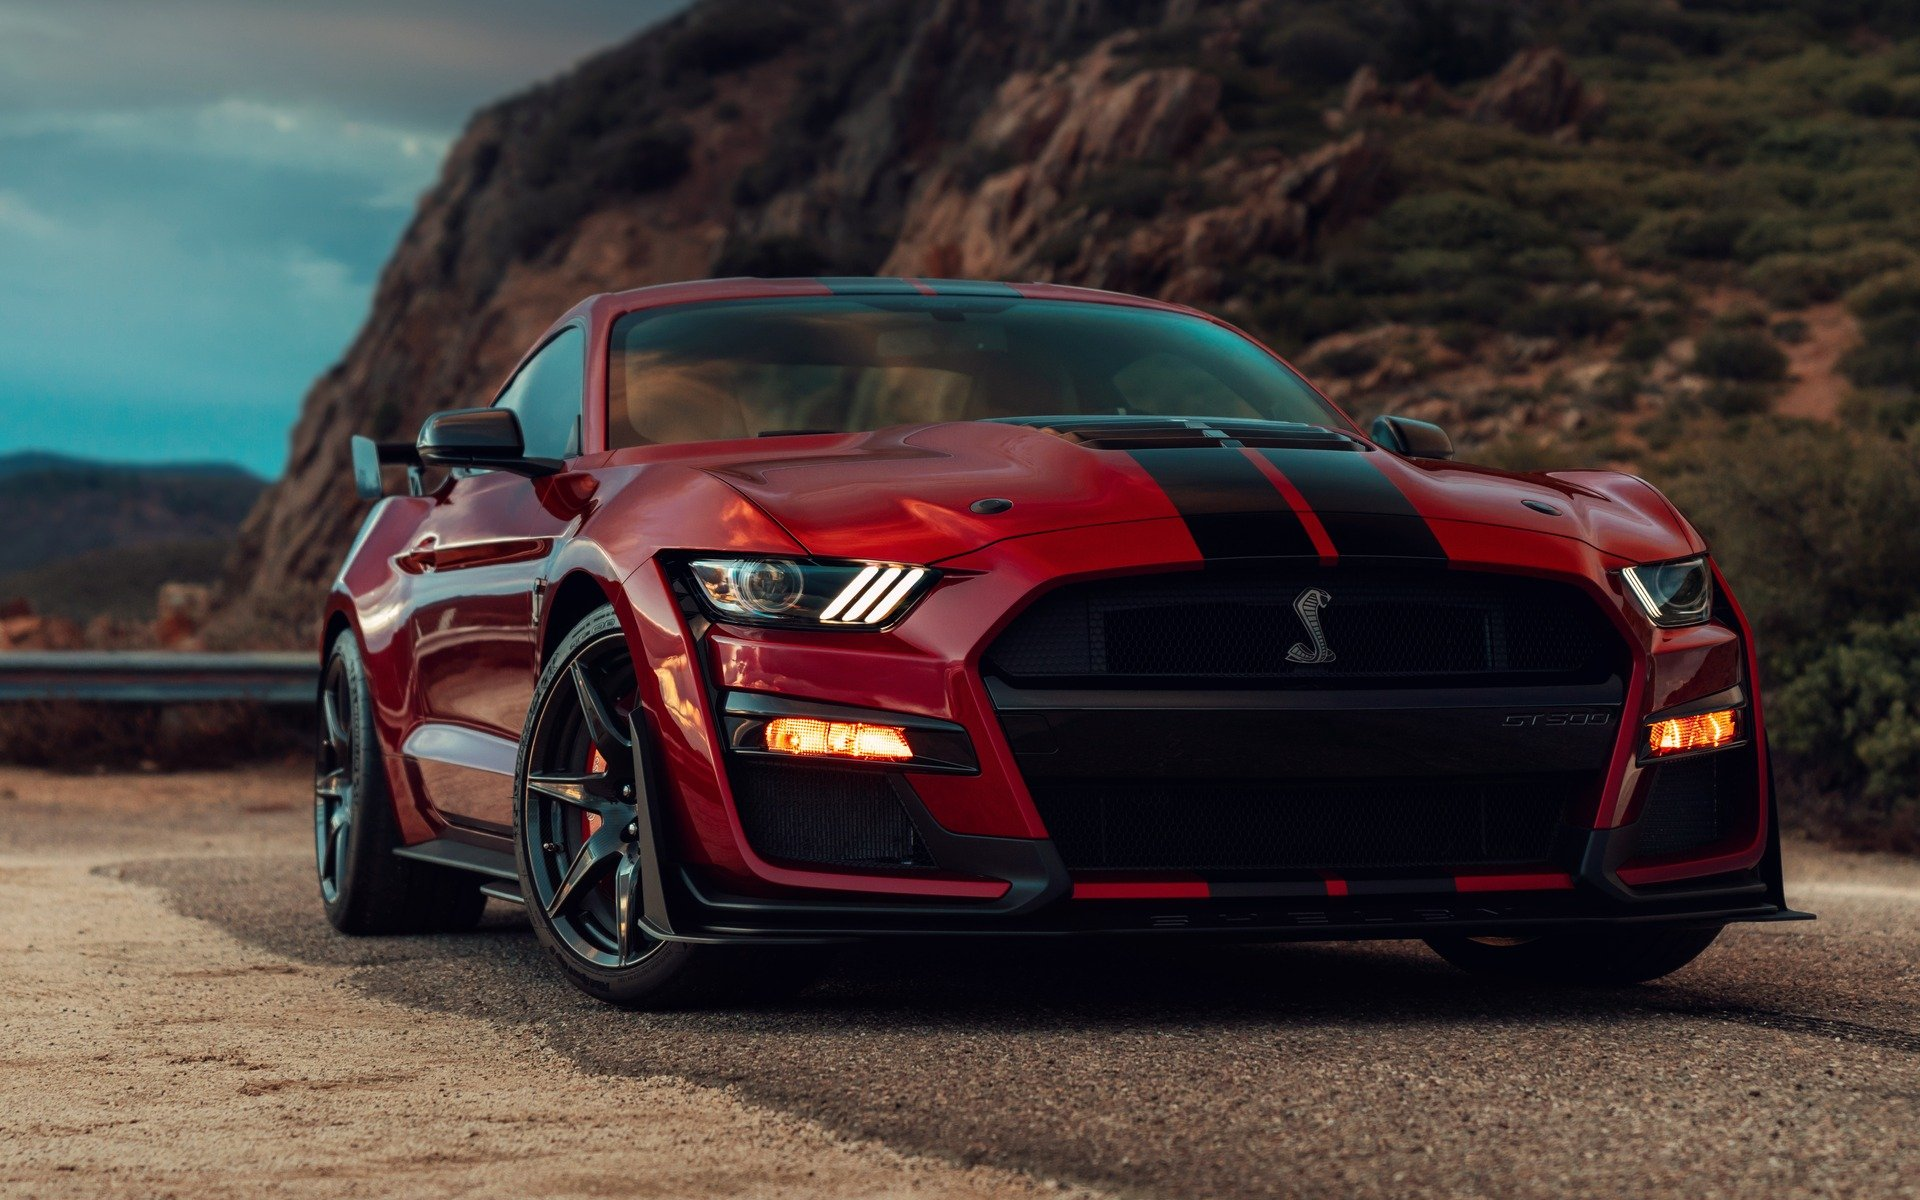 Forza-Horizon-4-Ford-Mustang-Shelby-GT500-2020